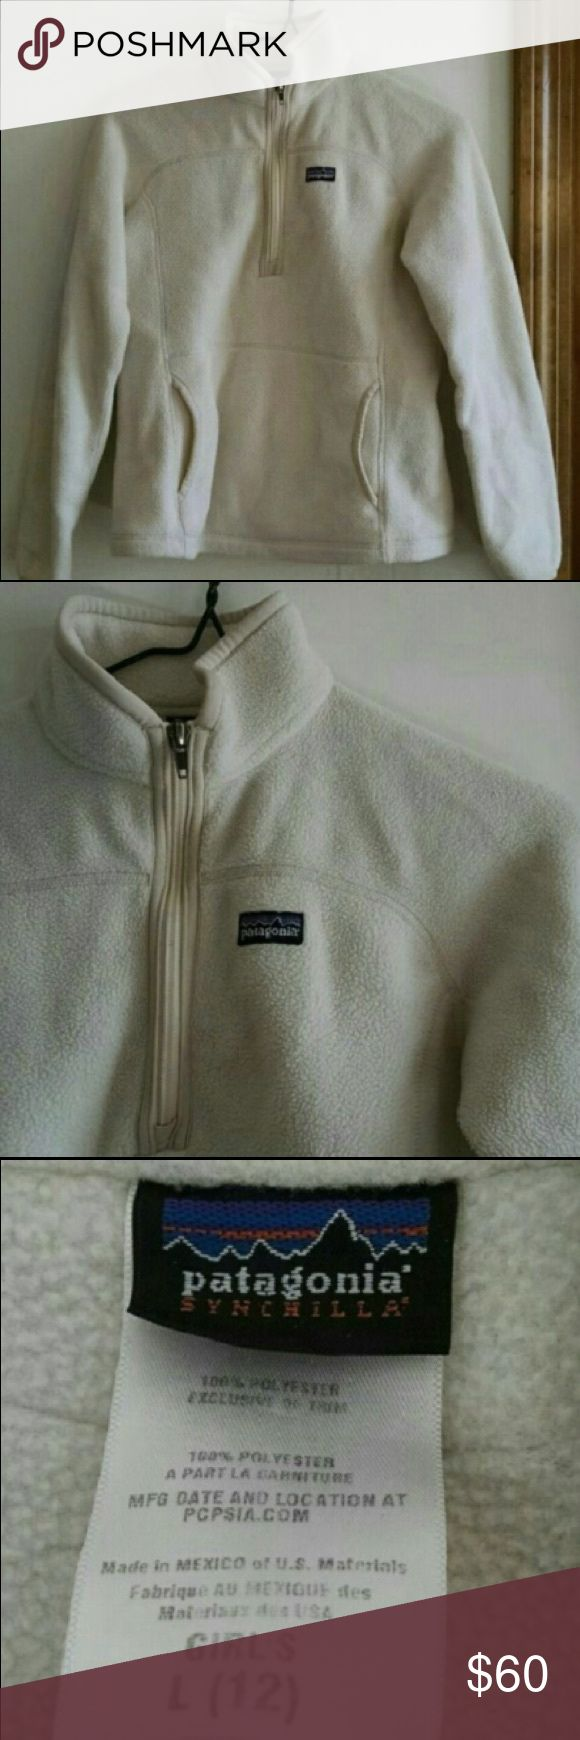 Patagonia Fleece Jacket Will fix Woman XS. Like new, great condition no stains just doesn't fit me! Patagonia Jackets & Coats